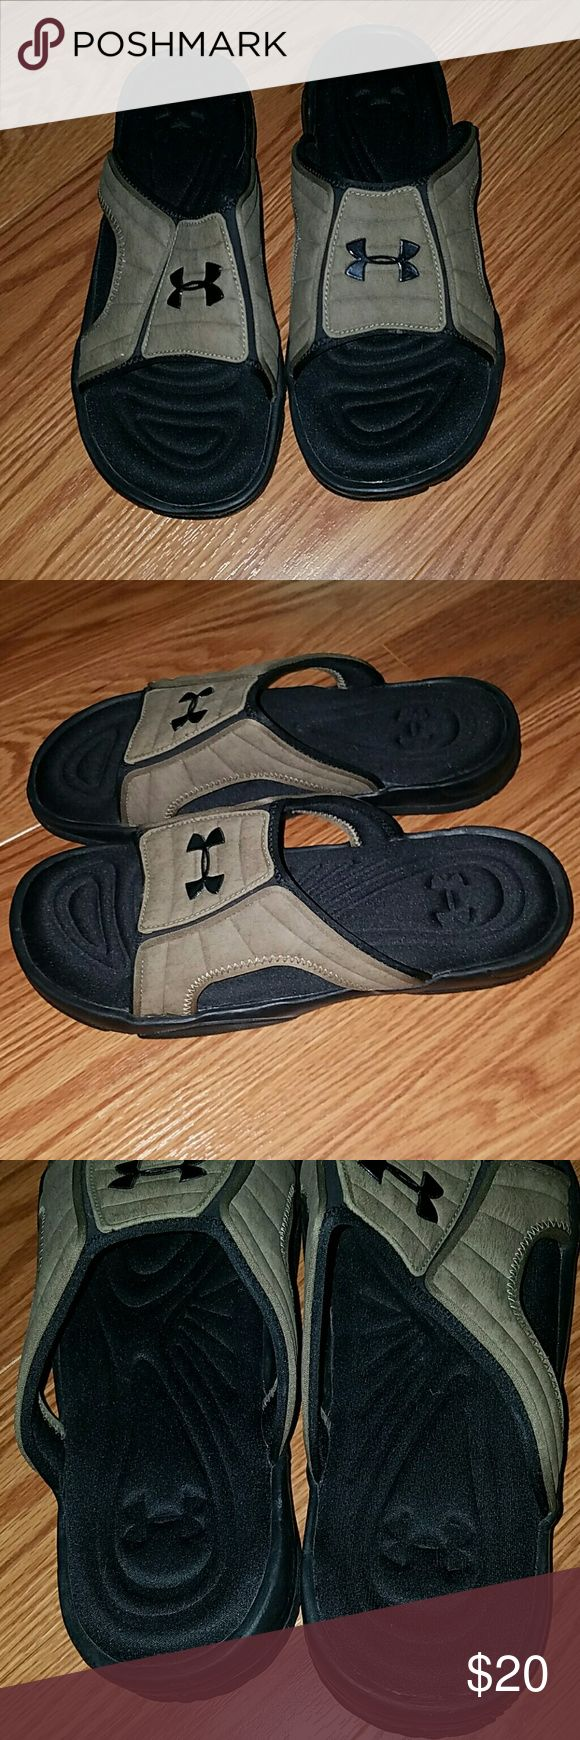 Under Armour Mens slides sandals NWOT Sz. 9 Under Armour Mens slides sandals NWOT Sz. 9. These were never worn and they have the foam cushion. Under Armour Shoes Sandals & Flip-Flops